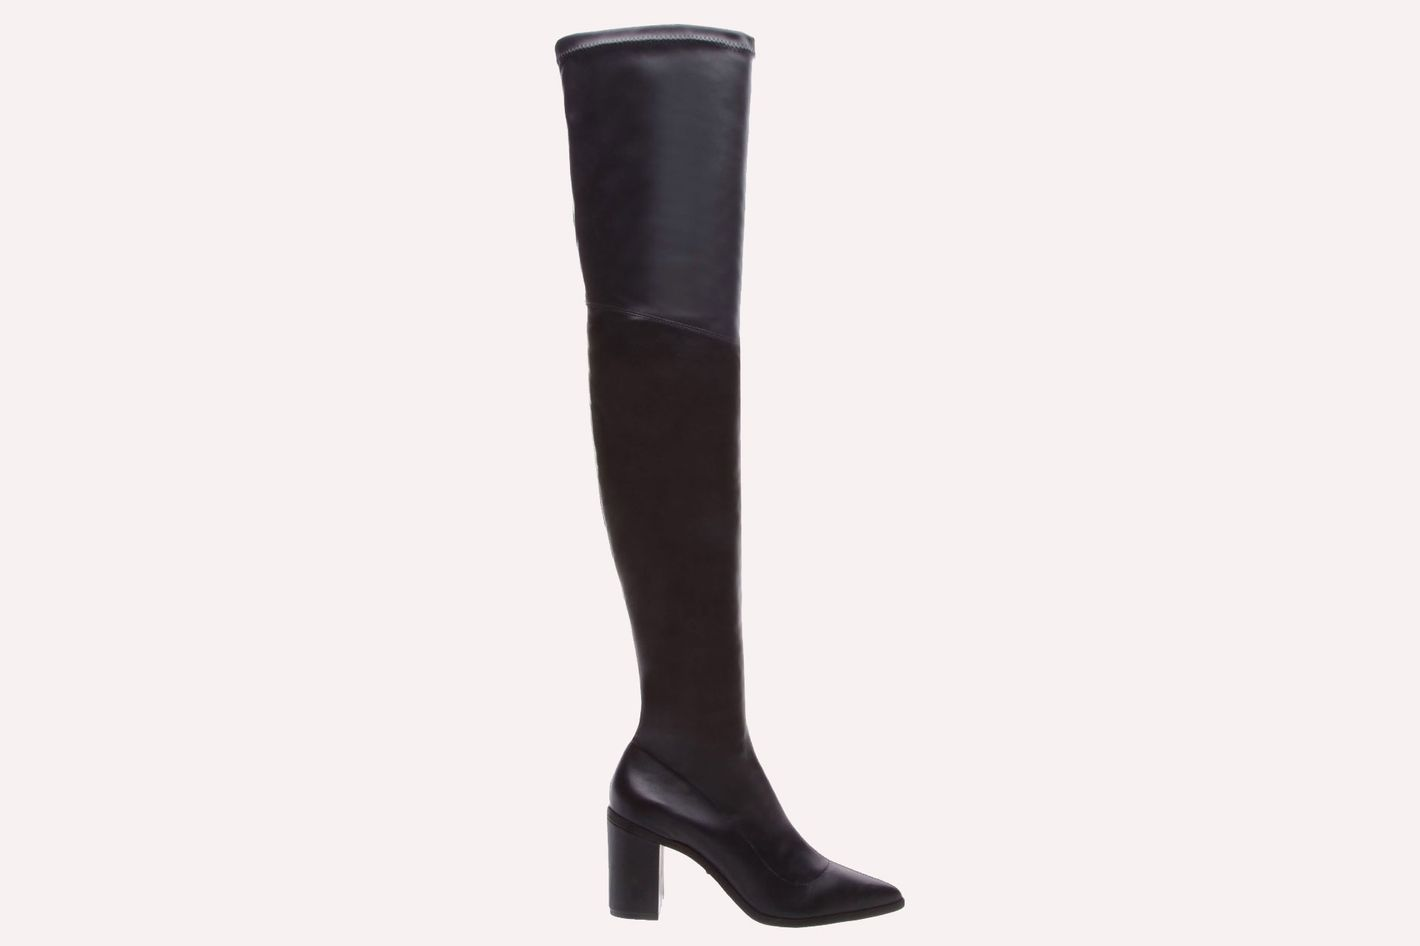 6edad9e4a0f 11 Best Knee High Boots Outfits - Style Tips   Ideas 2018